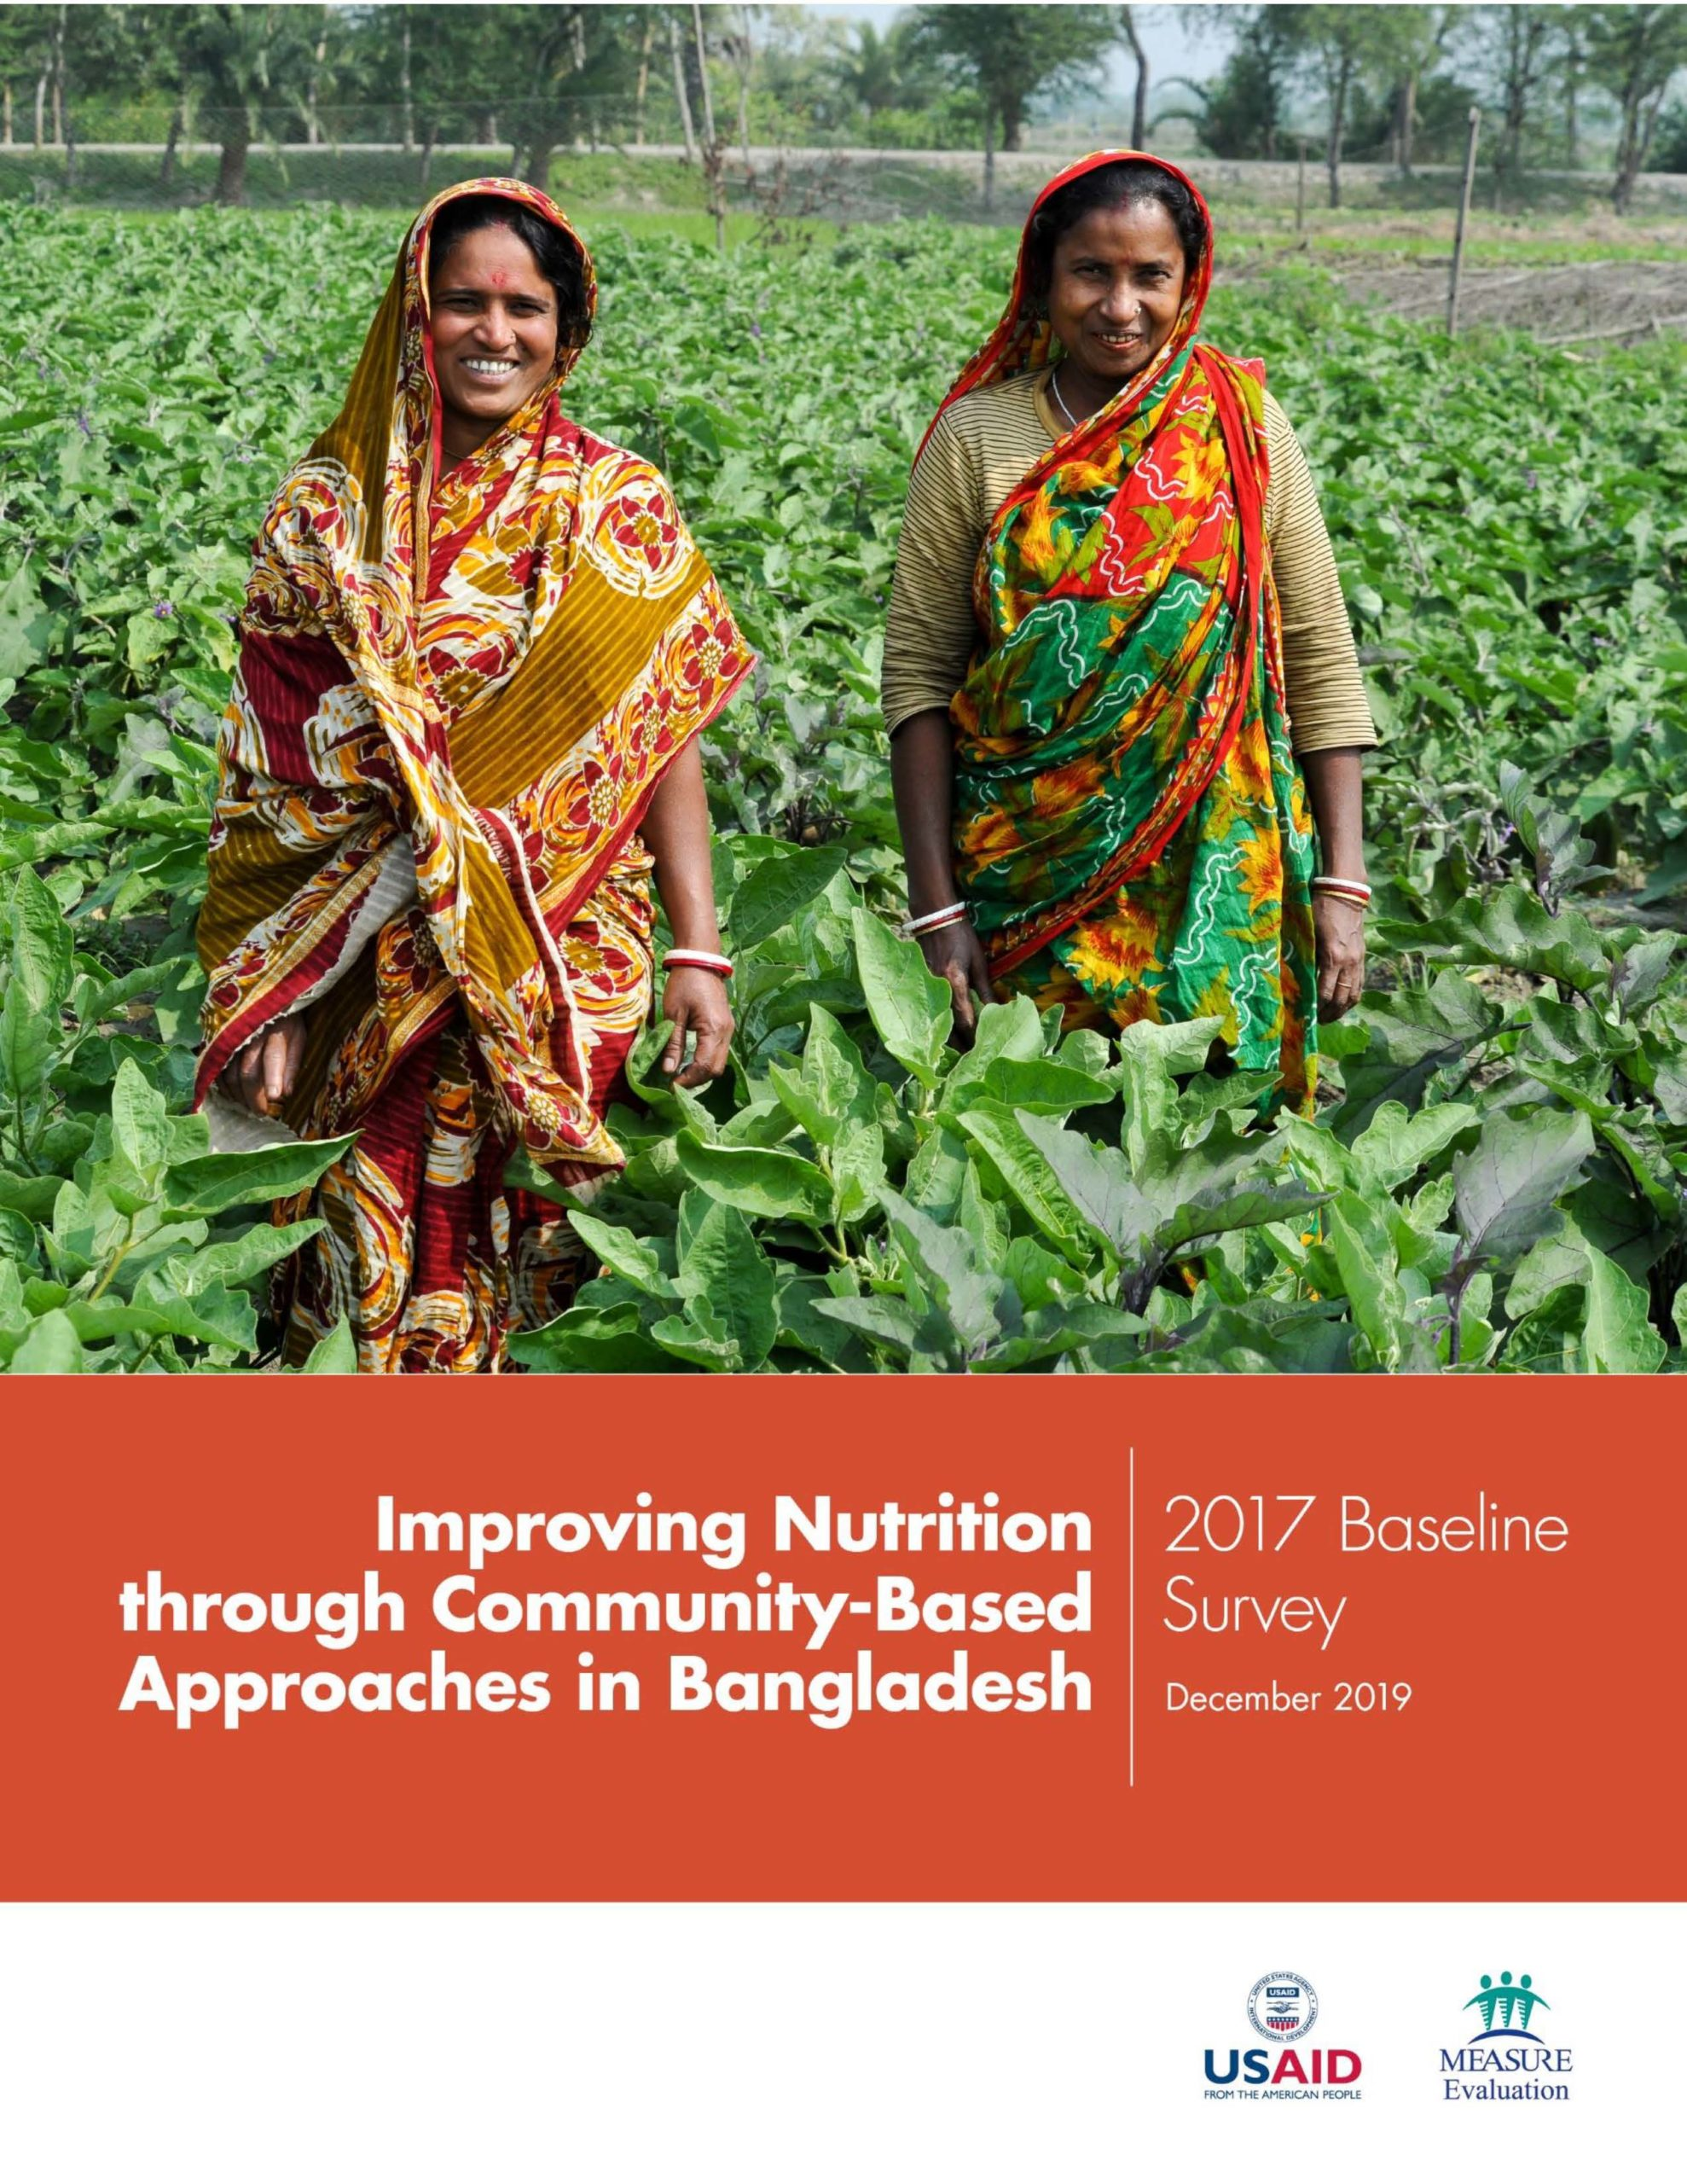 Improving Nutrition through Community-Based Approaches in Bangladesh